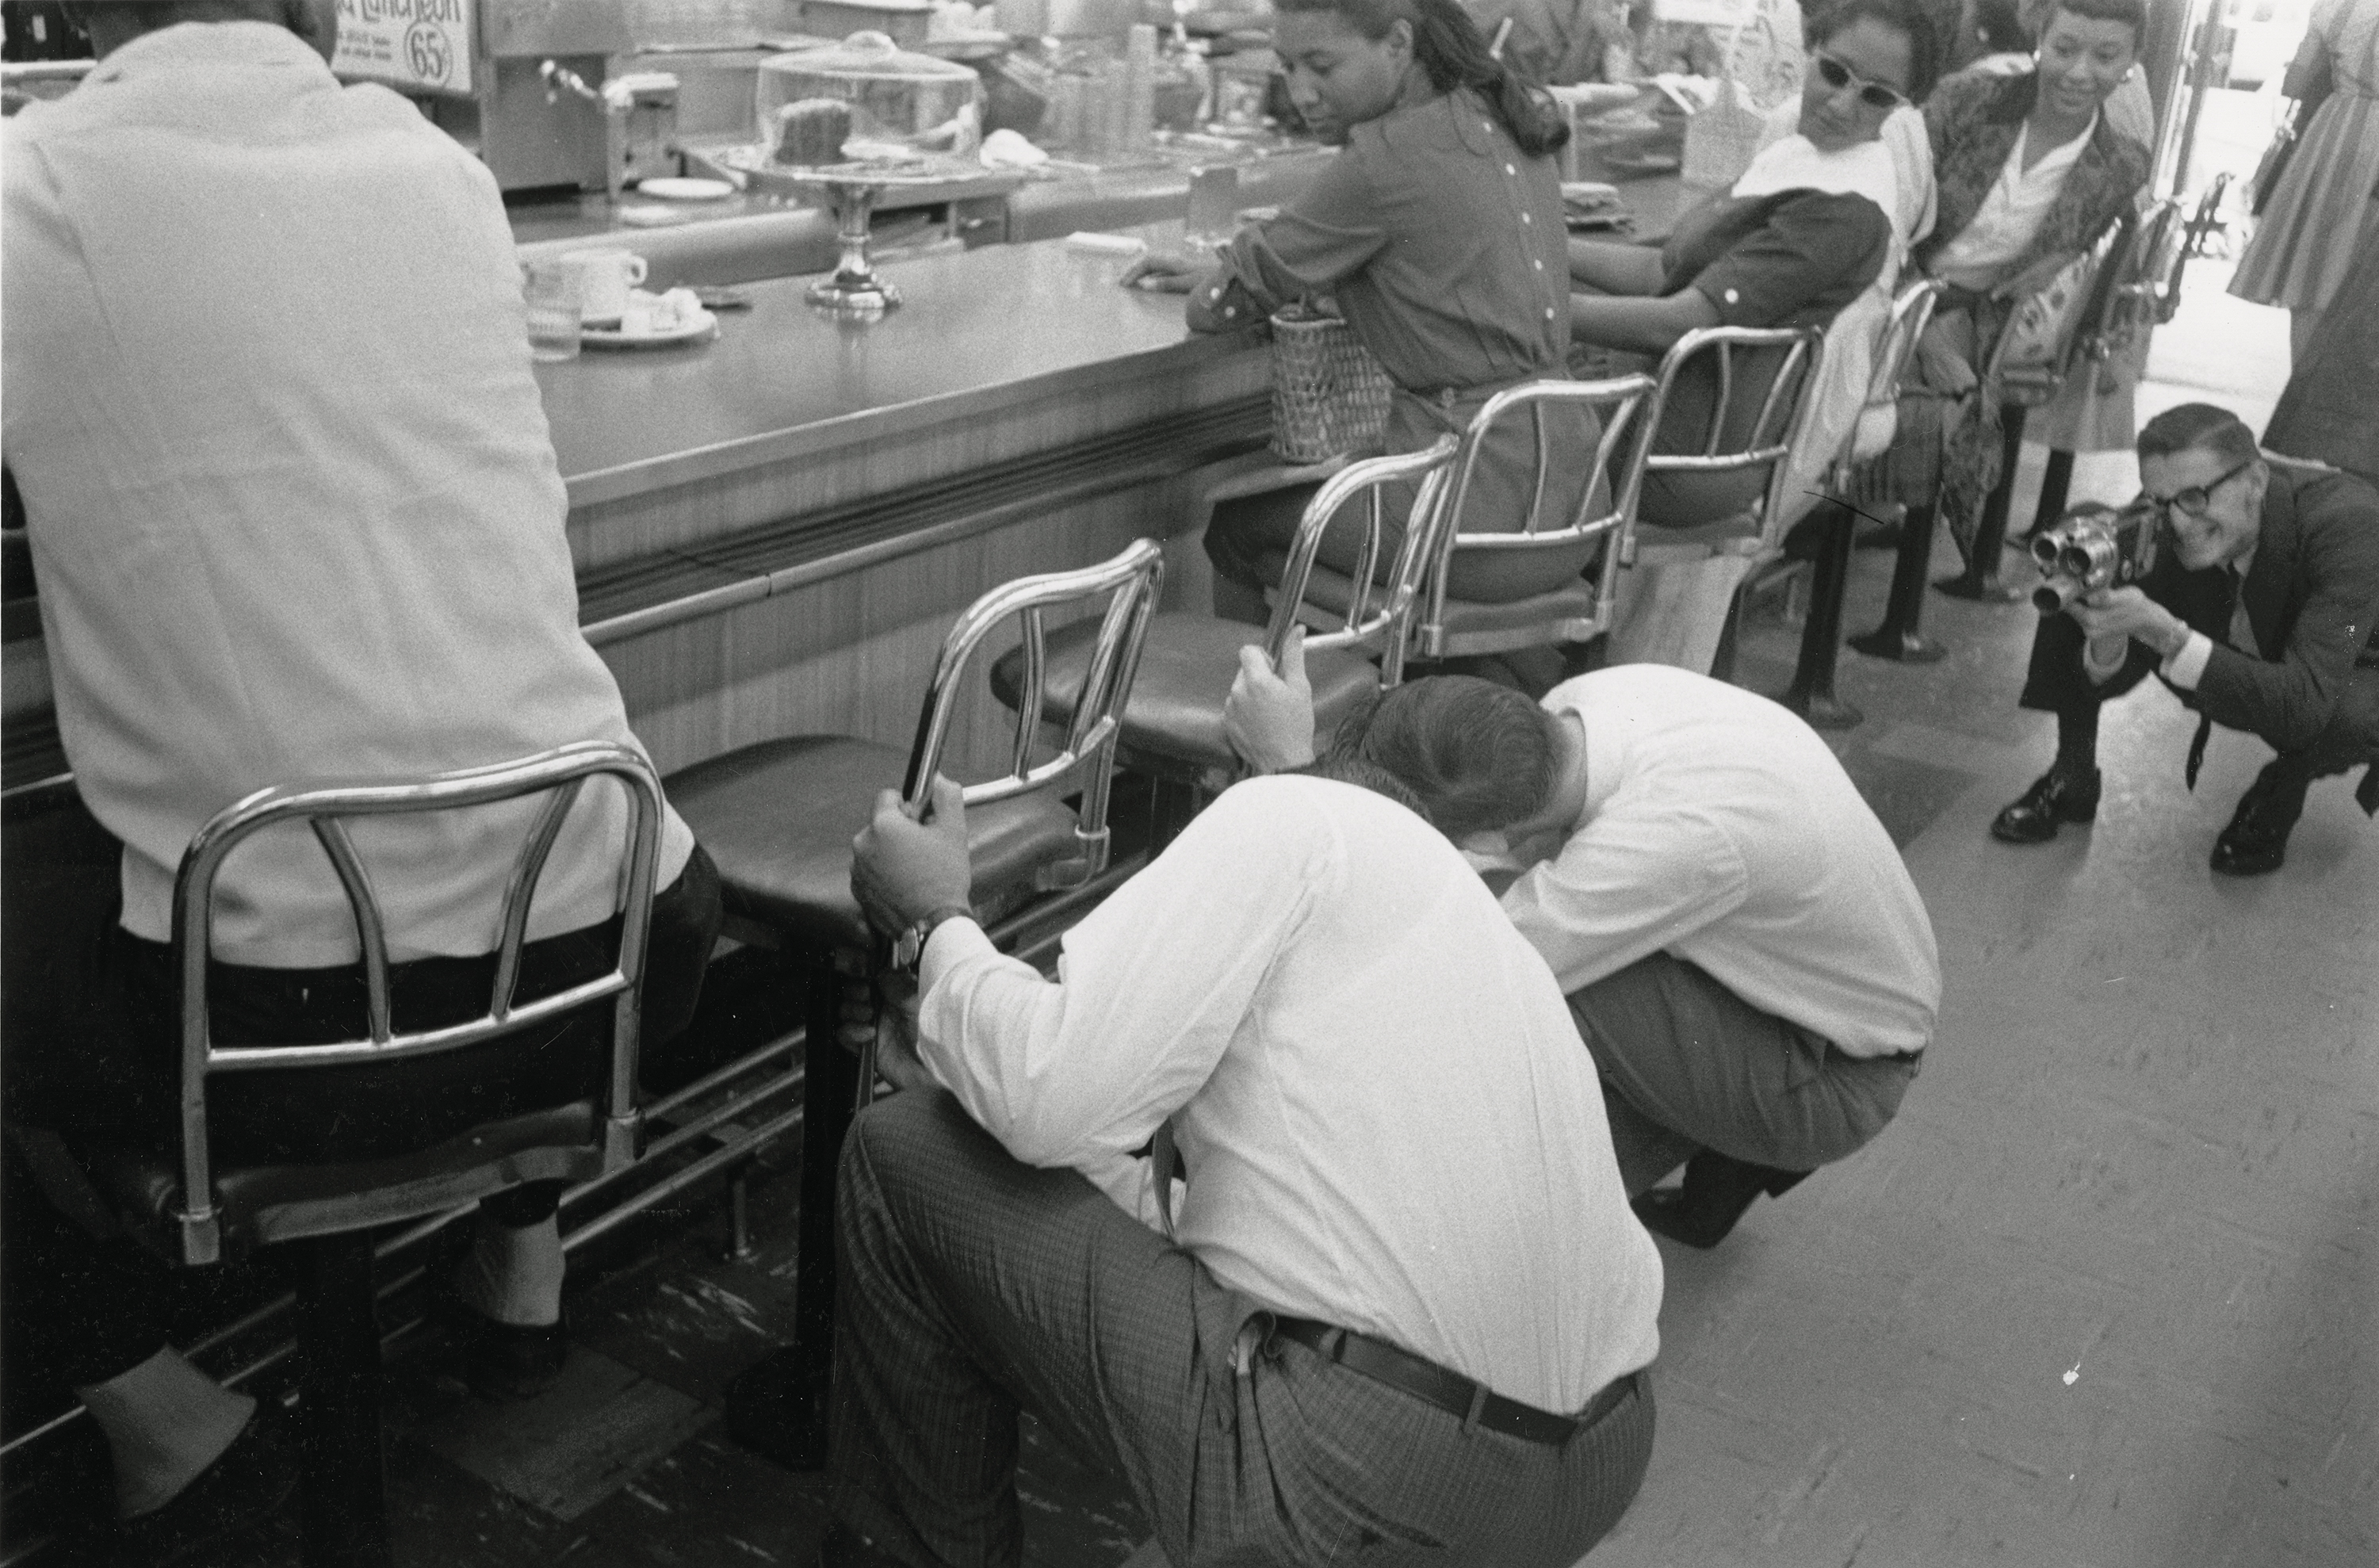 Staff remove stools during sit-in at White's Pharmacy. 